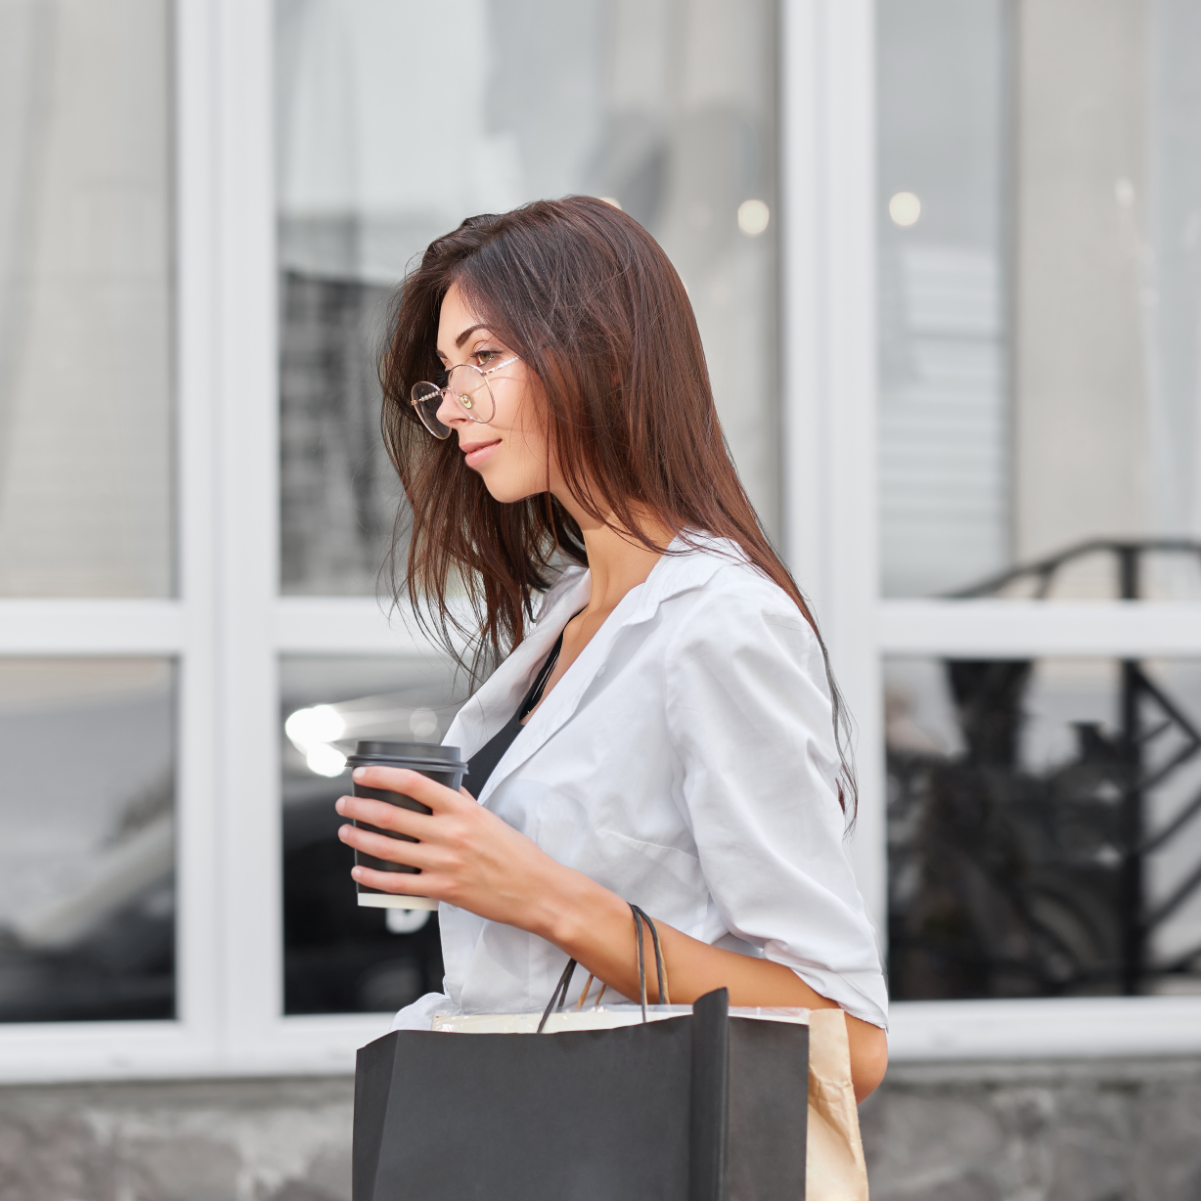 Young slim girl with long brunette hair going out from shop carrying bags.